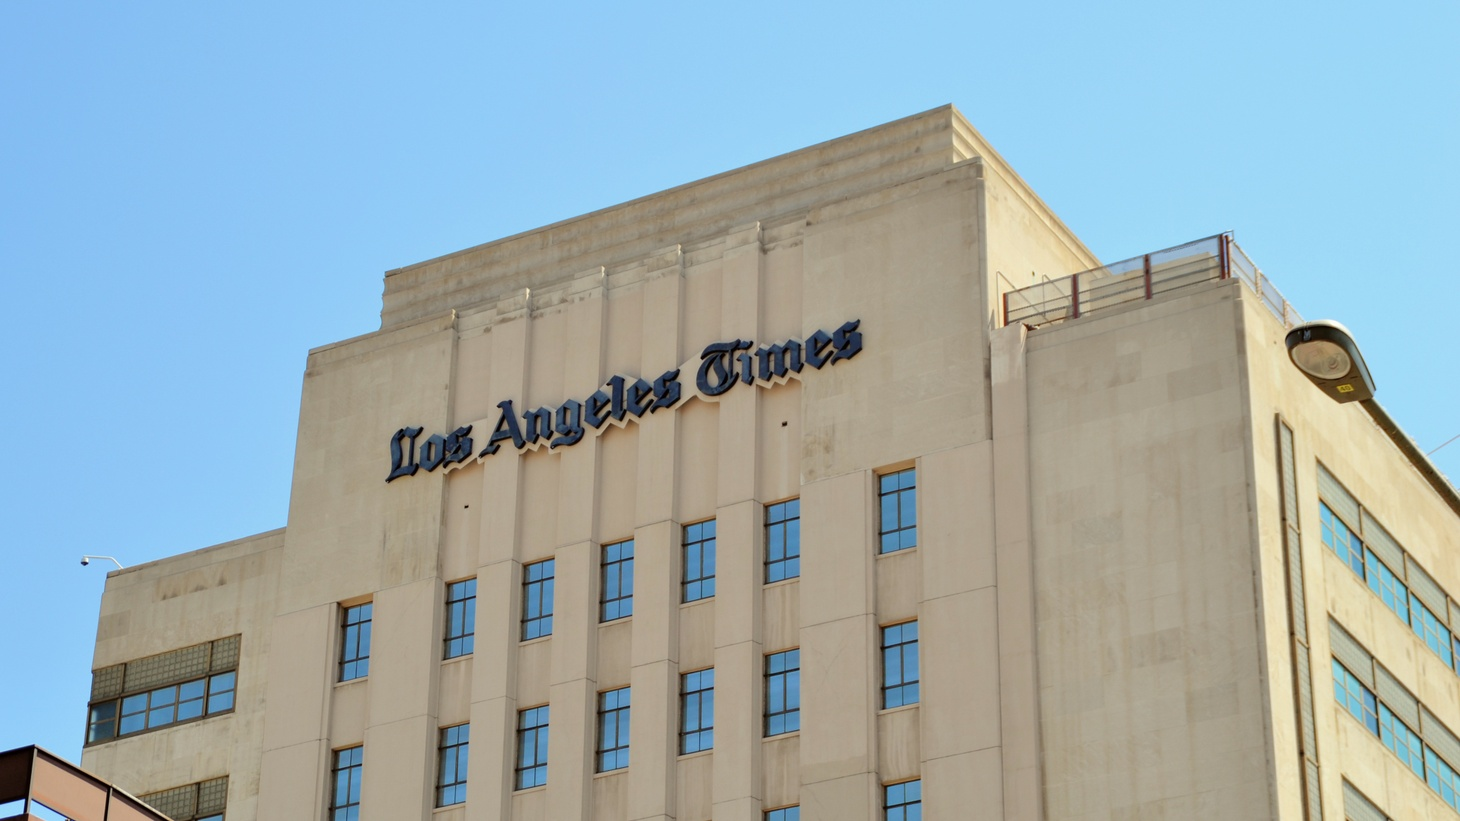 The LA Times Guild's Latino Caucus is calling for a newsroom that represents the racial makeup of LA County. Latinos make up nearly 50% of LA County but only 13% of the LA Times newsroom.